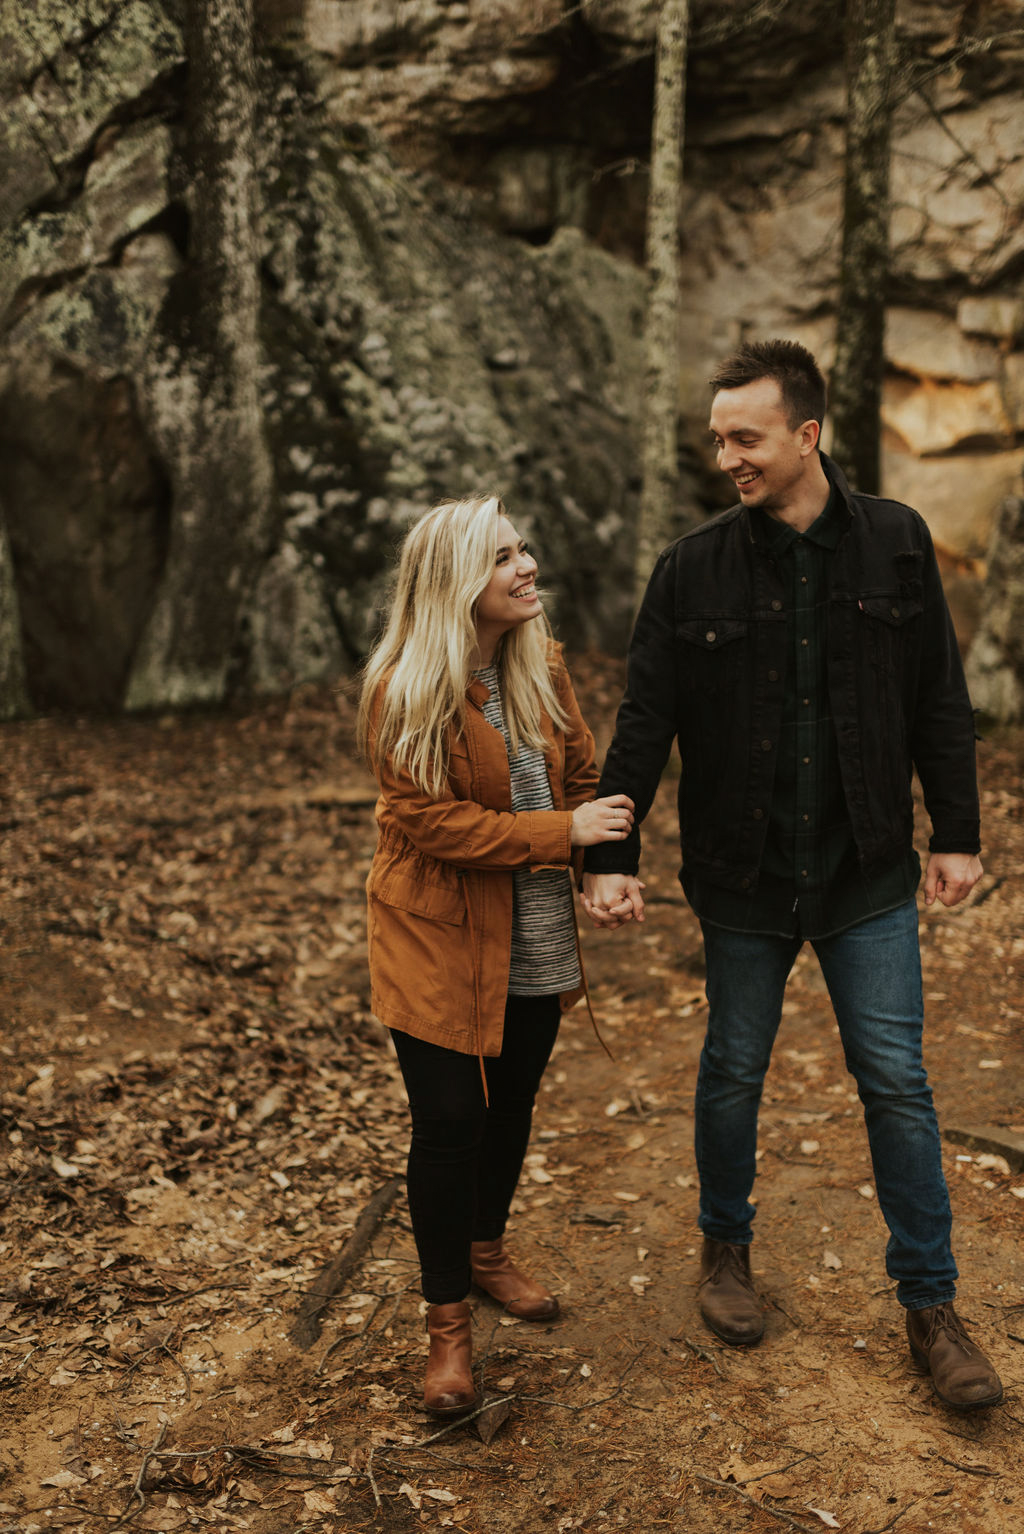 adventurous engagement session at a boulder field in alabama 38.jpg